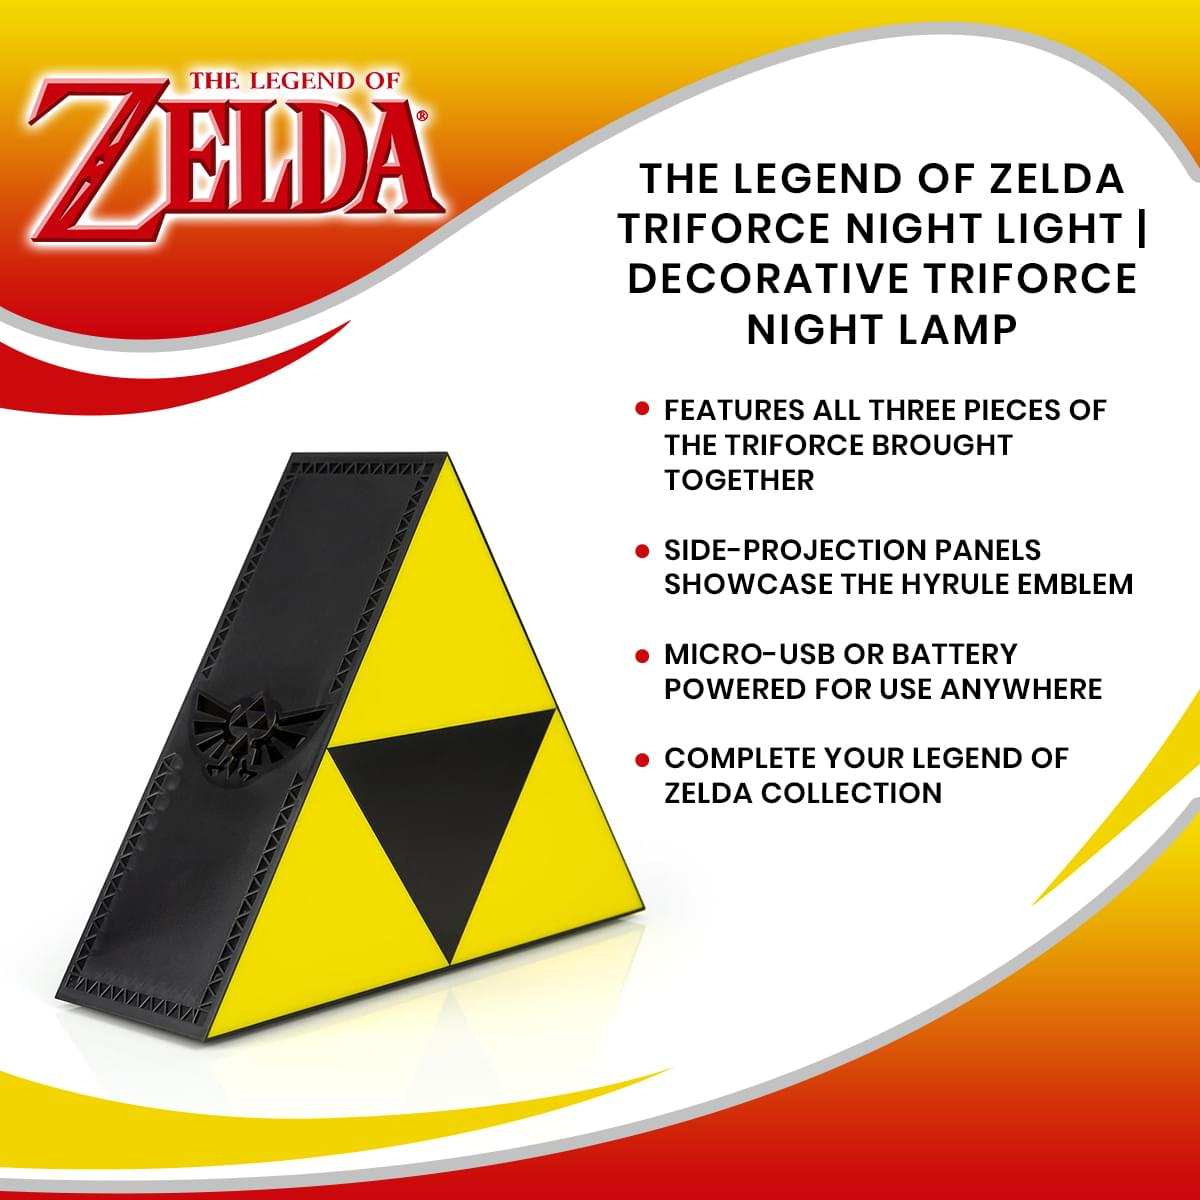 Retro Gaming Ocarina of Time Triforce Zelda Triforce Gift  Breath of the Wild Zelda Tri-Force Neon Light  Gaming Decor